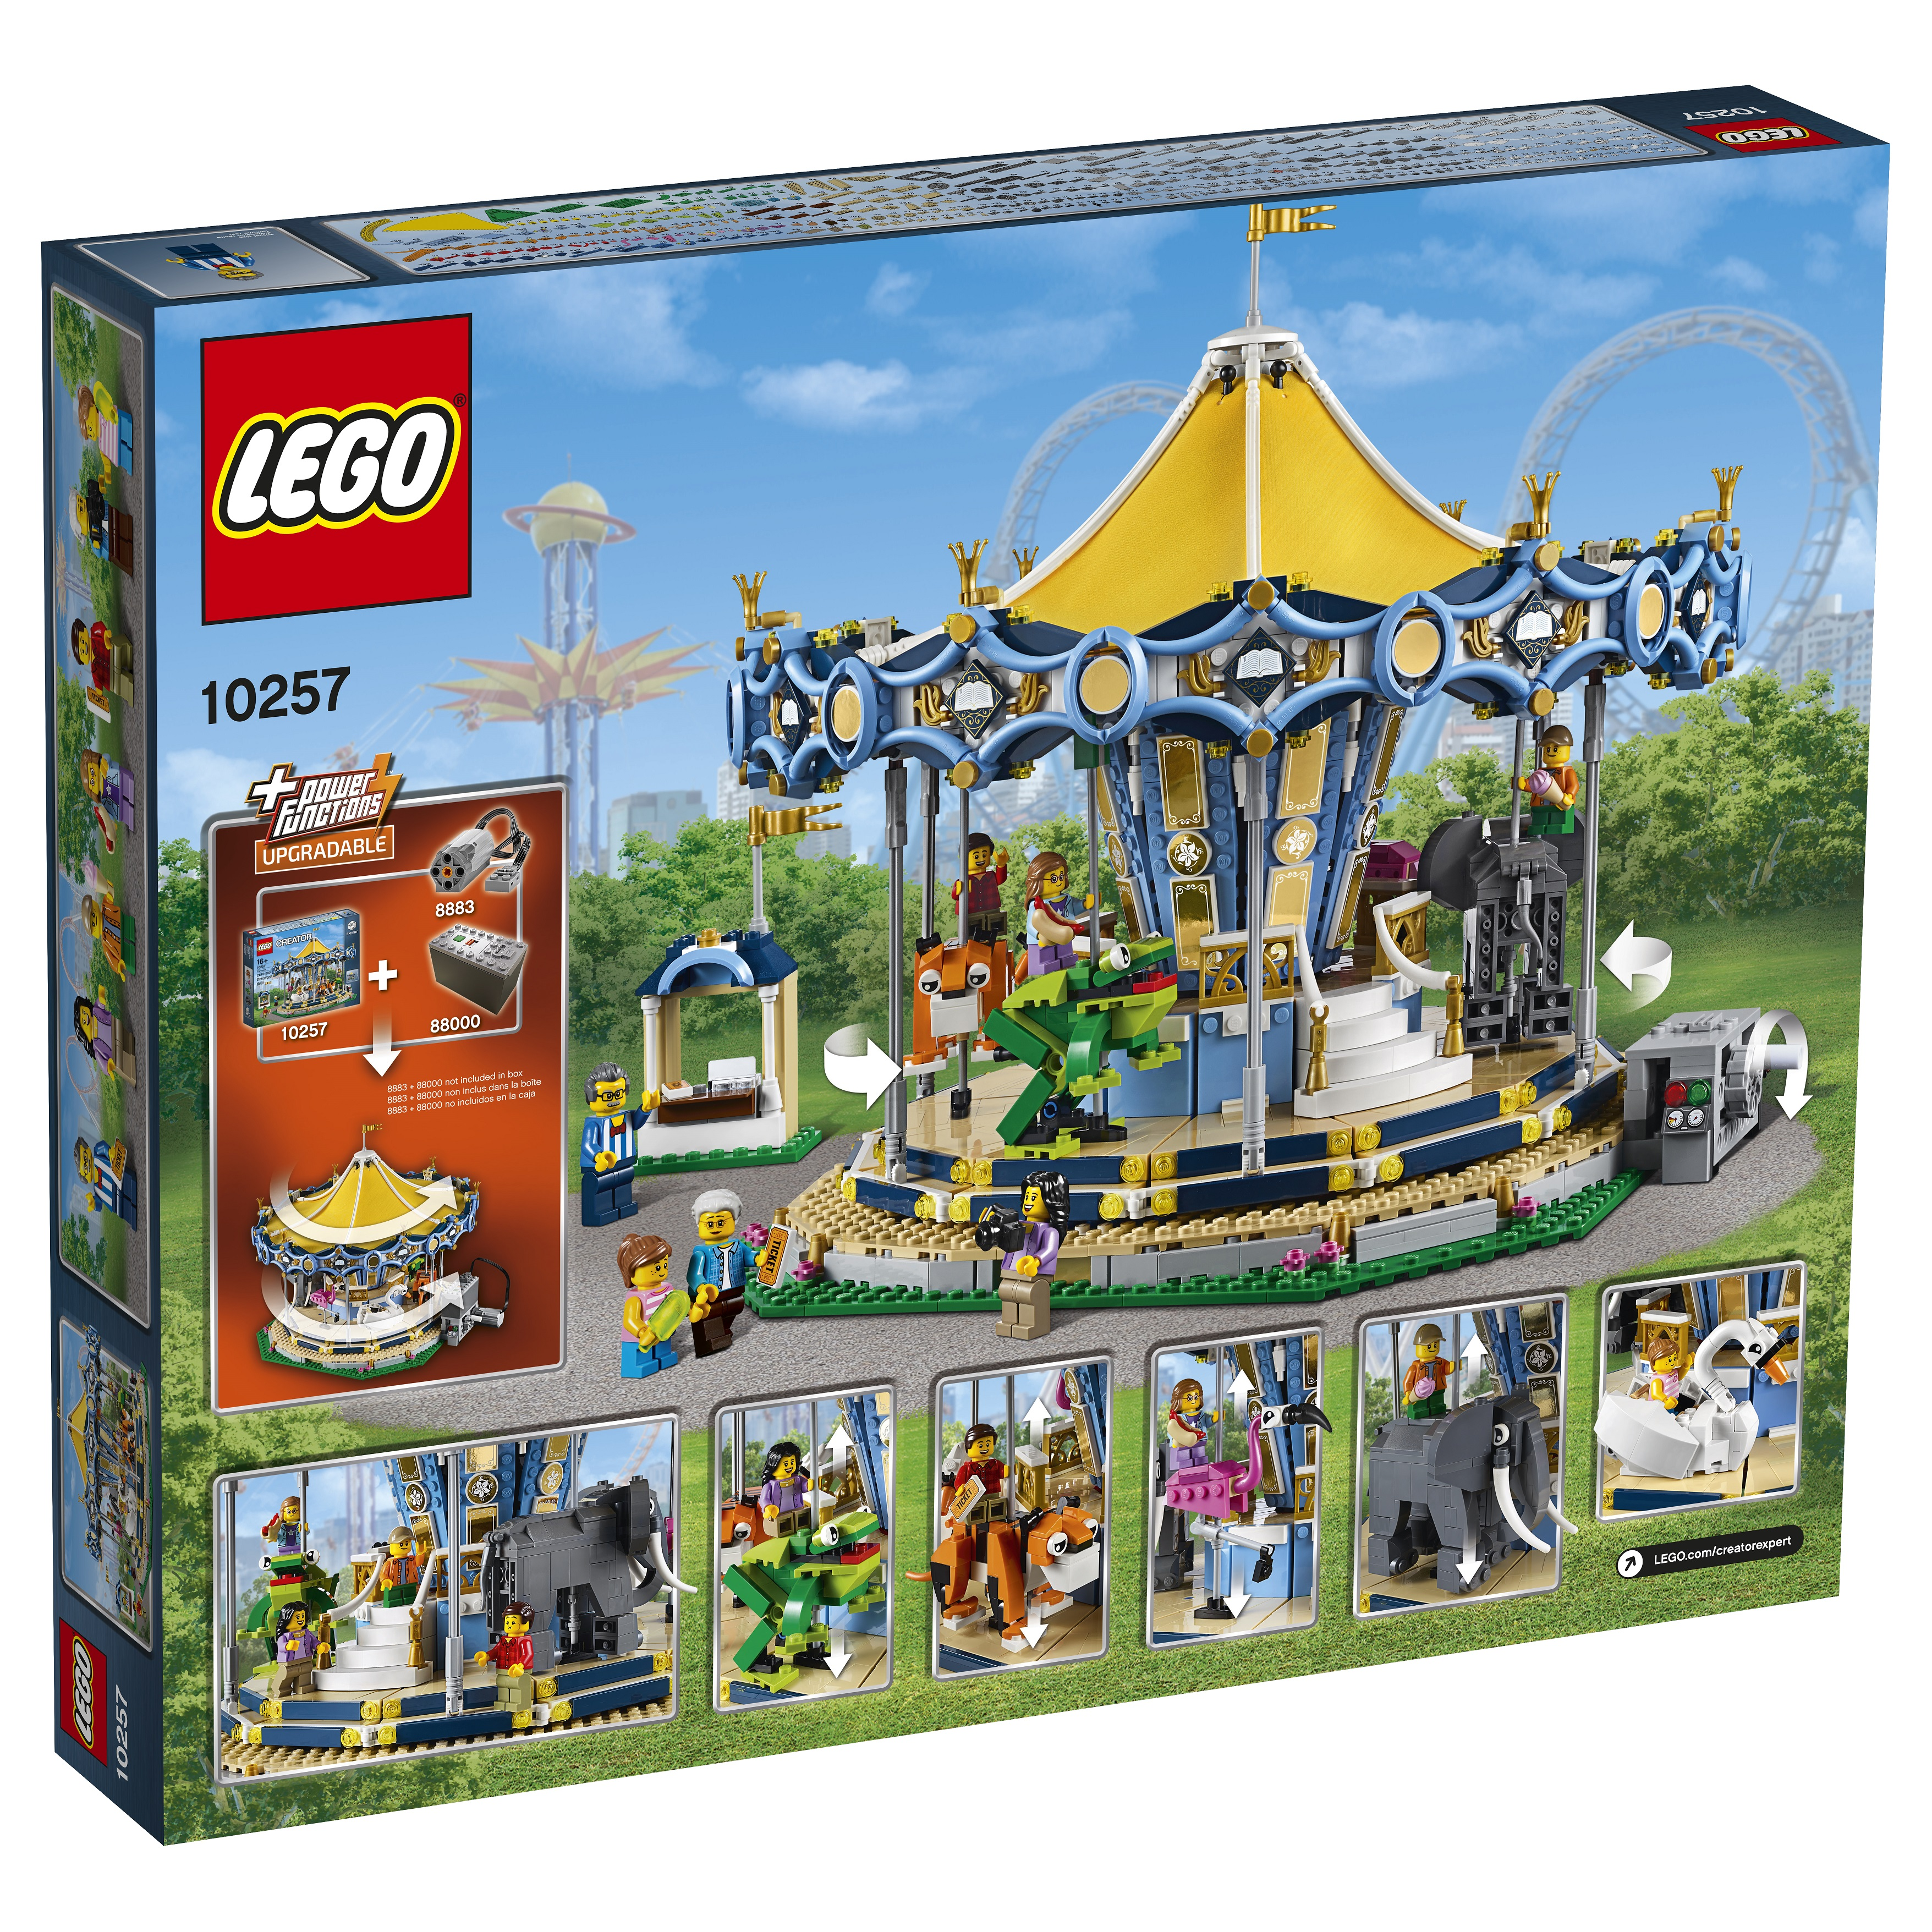 lego 10257 creator carousel is the latest attraction at. Black Bedroom Furniture Sets. Home Design Ideas